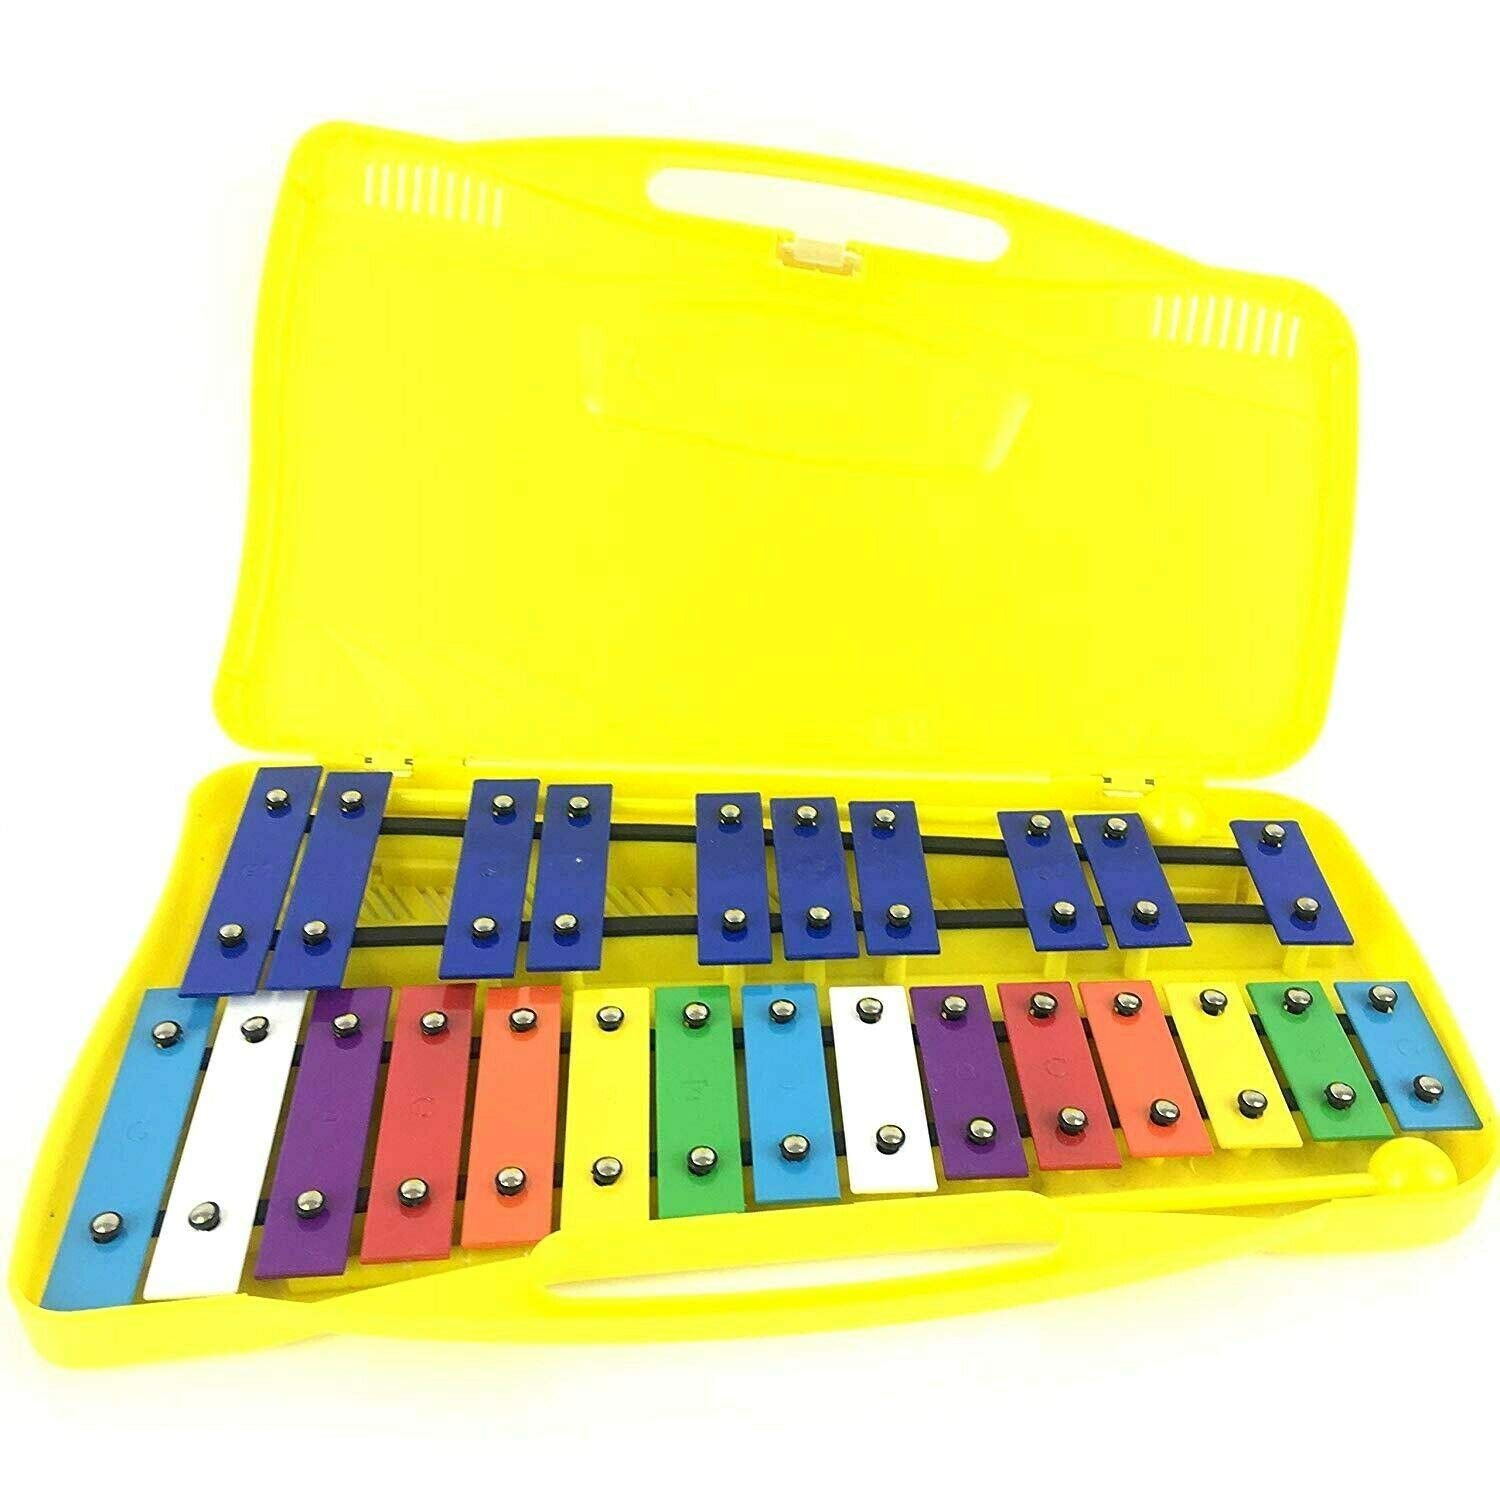 ProKussion Colourful Chromatic G5-G7 25 Note Glockenspiel Xylophone in Yellow Plastic Case